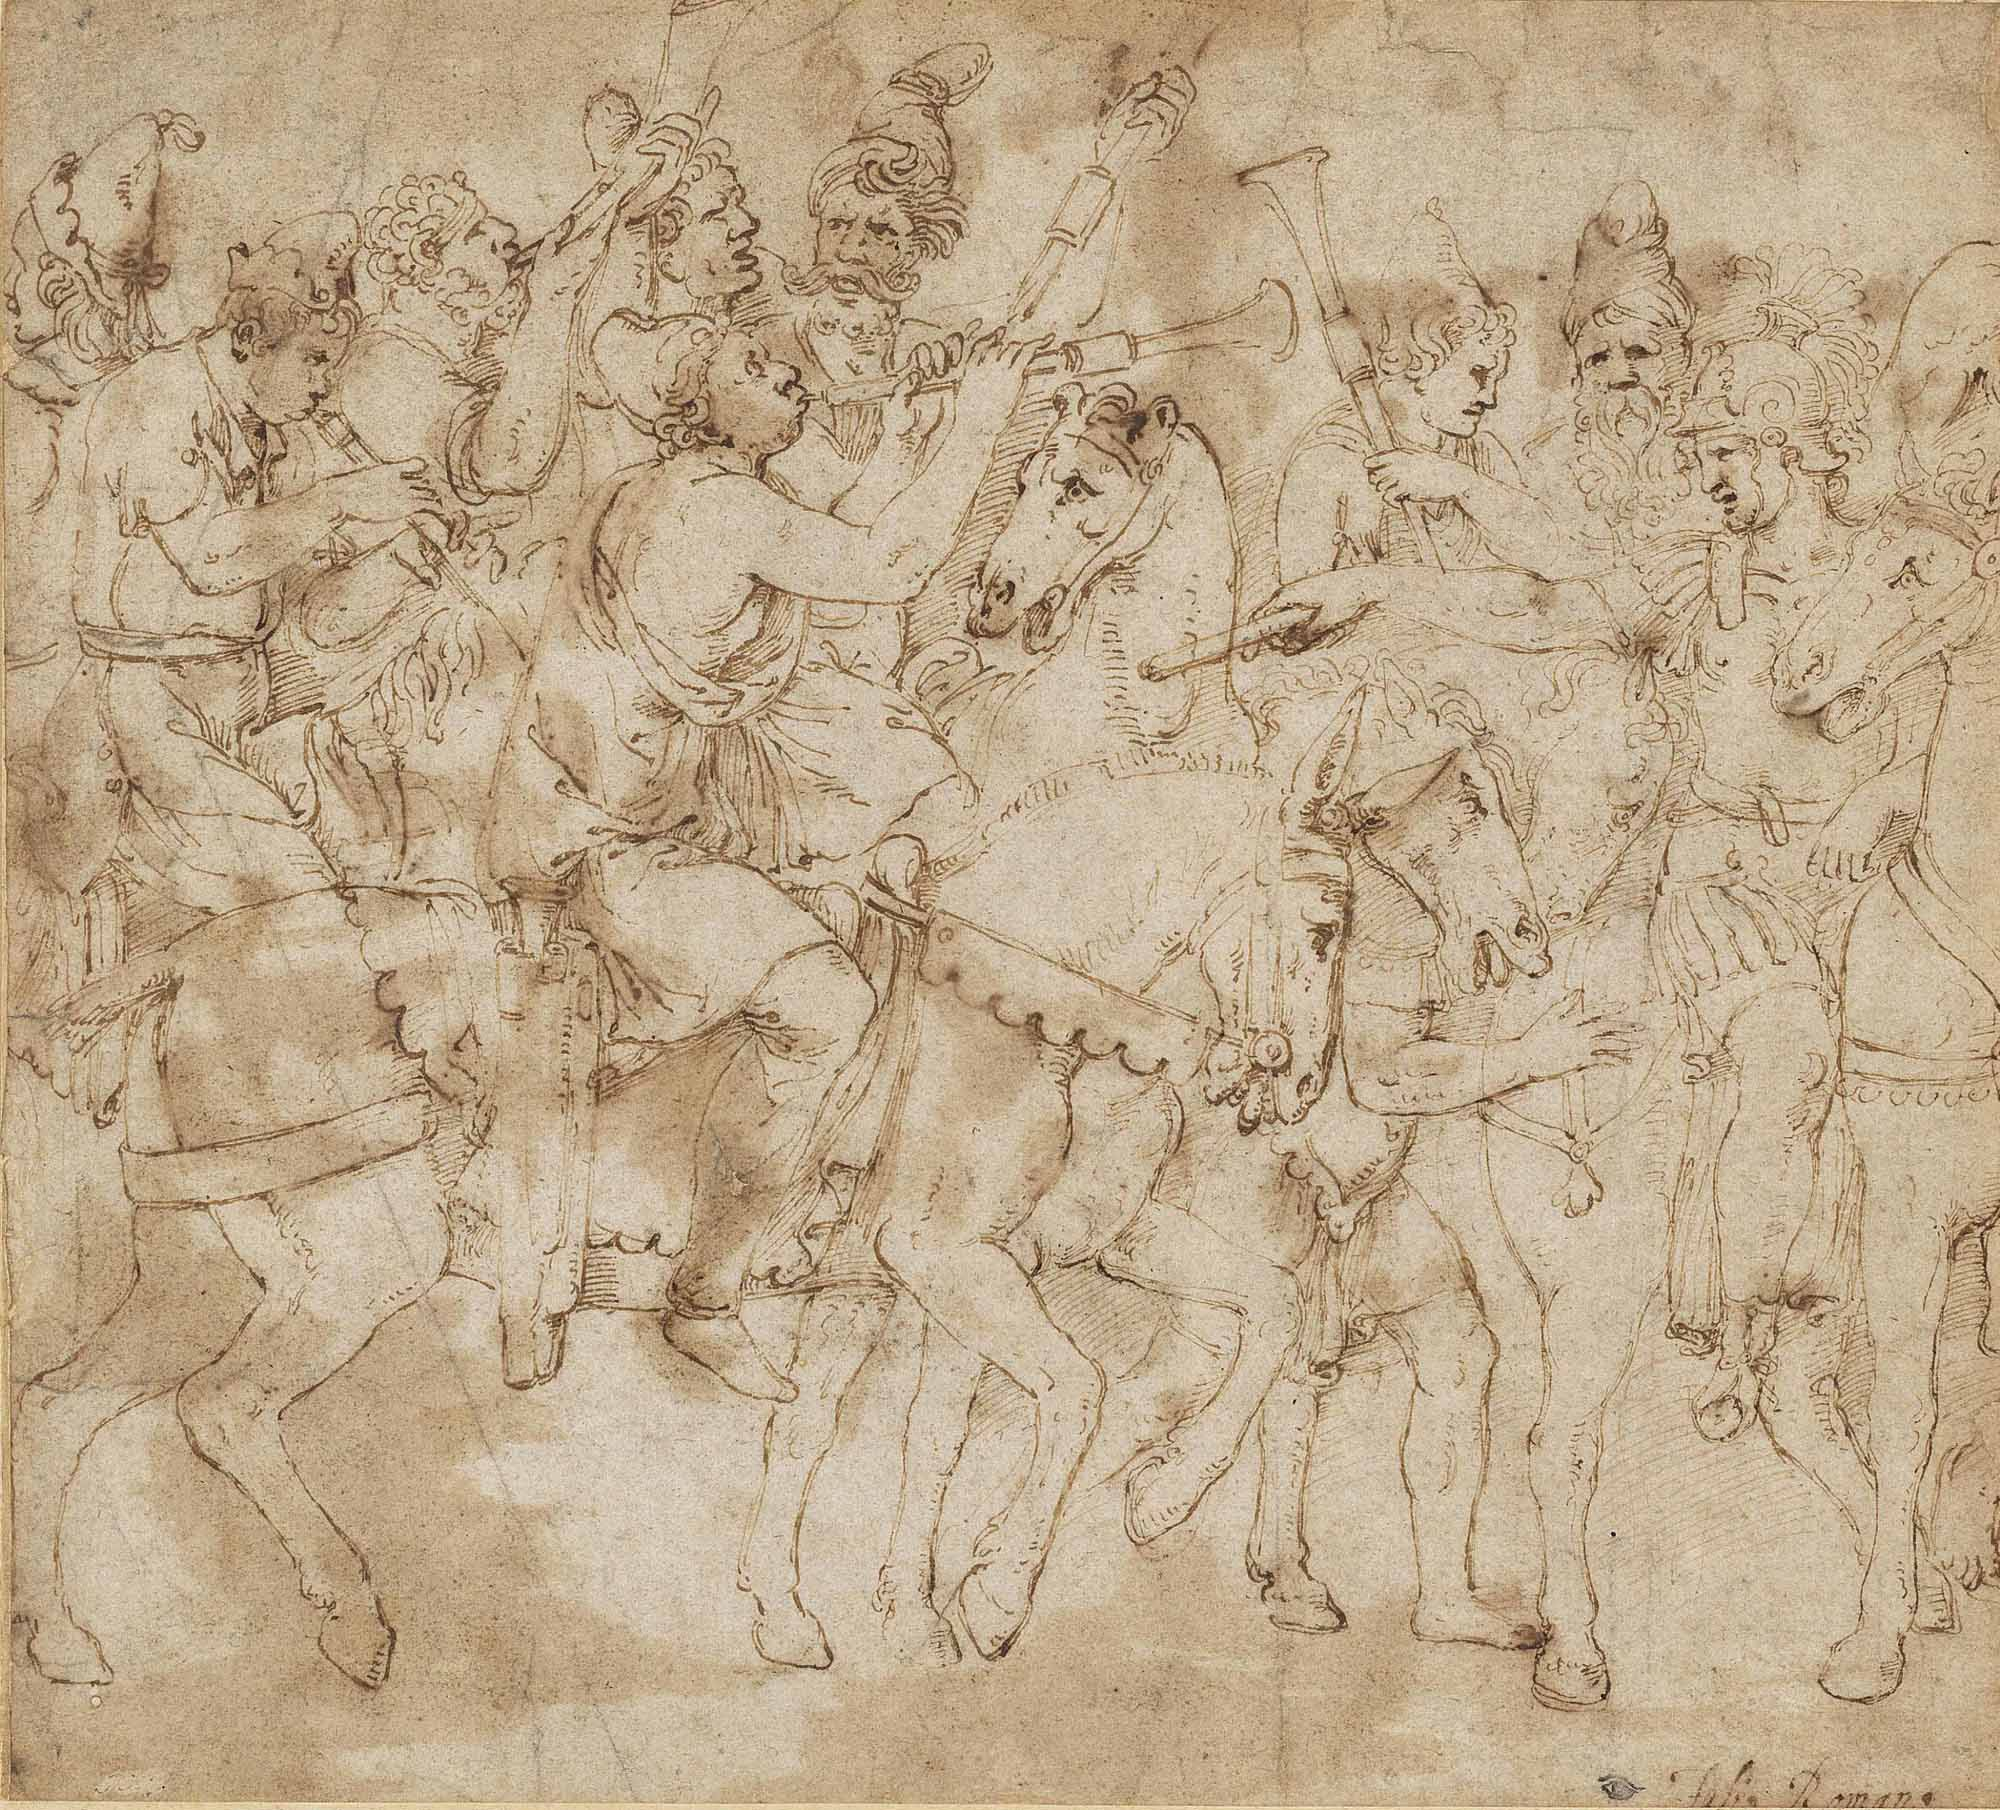 A Roman Officer with mounted musicians, one on an ass